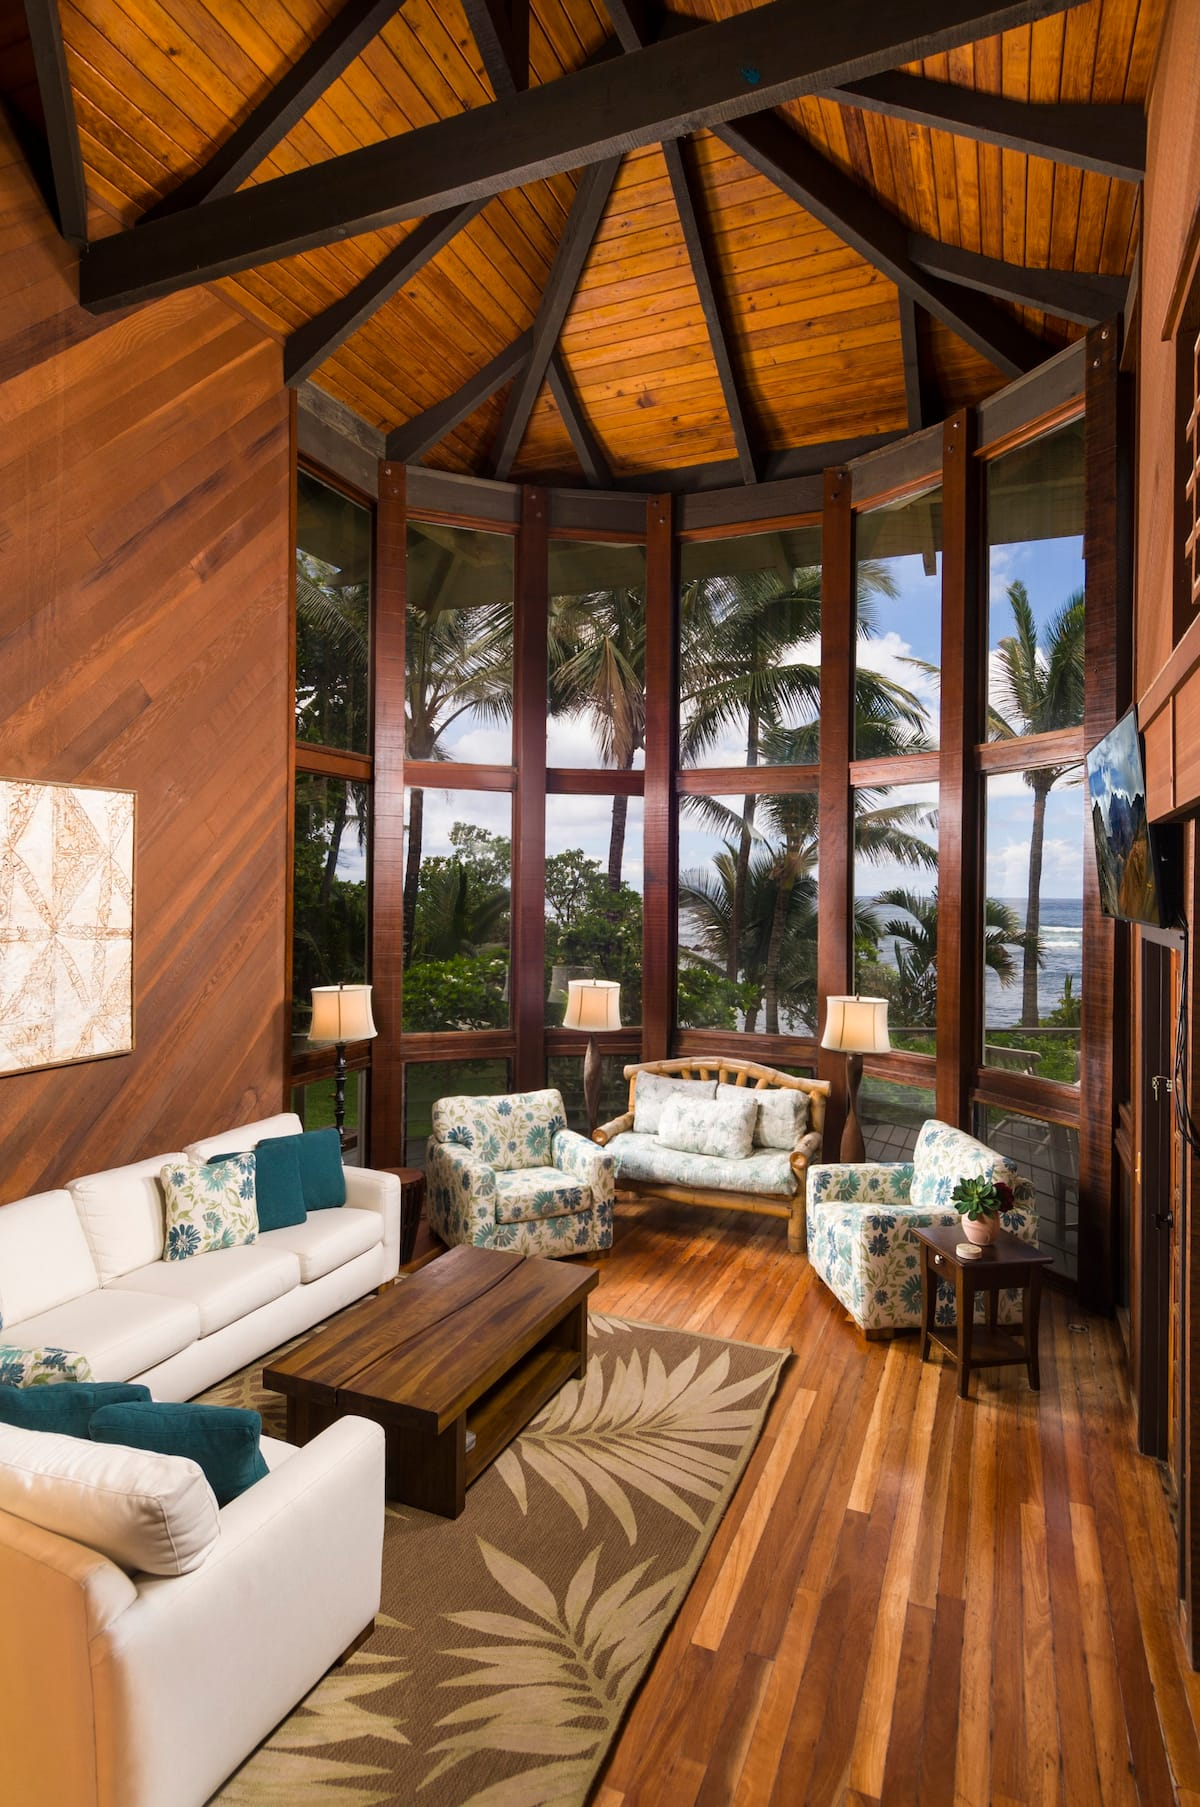 the Hamoa Beach House is one of the best Airbnbs in Maui